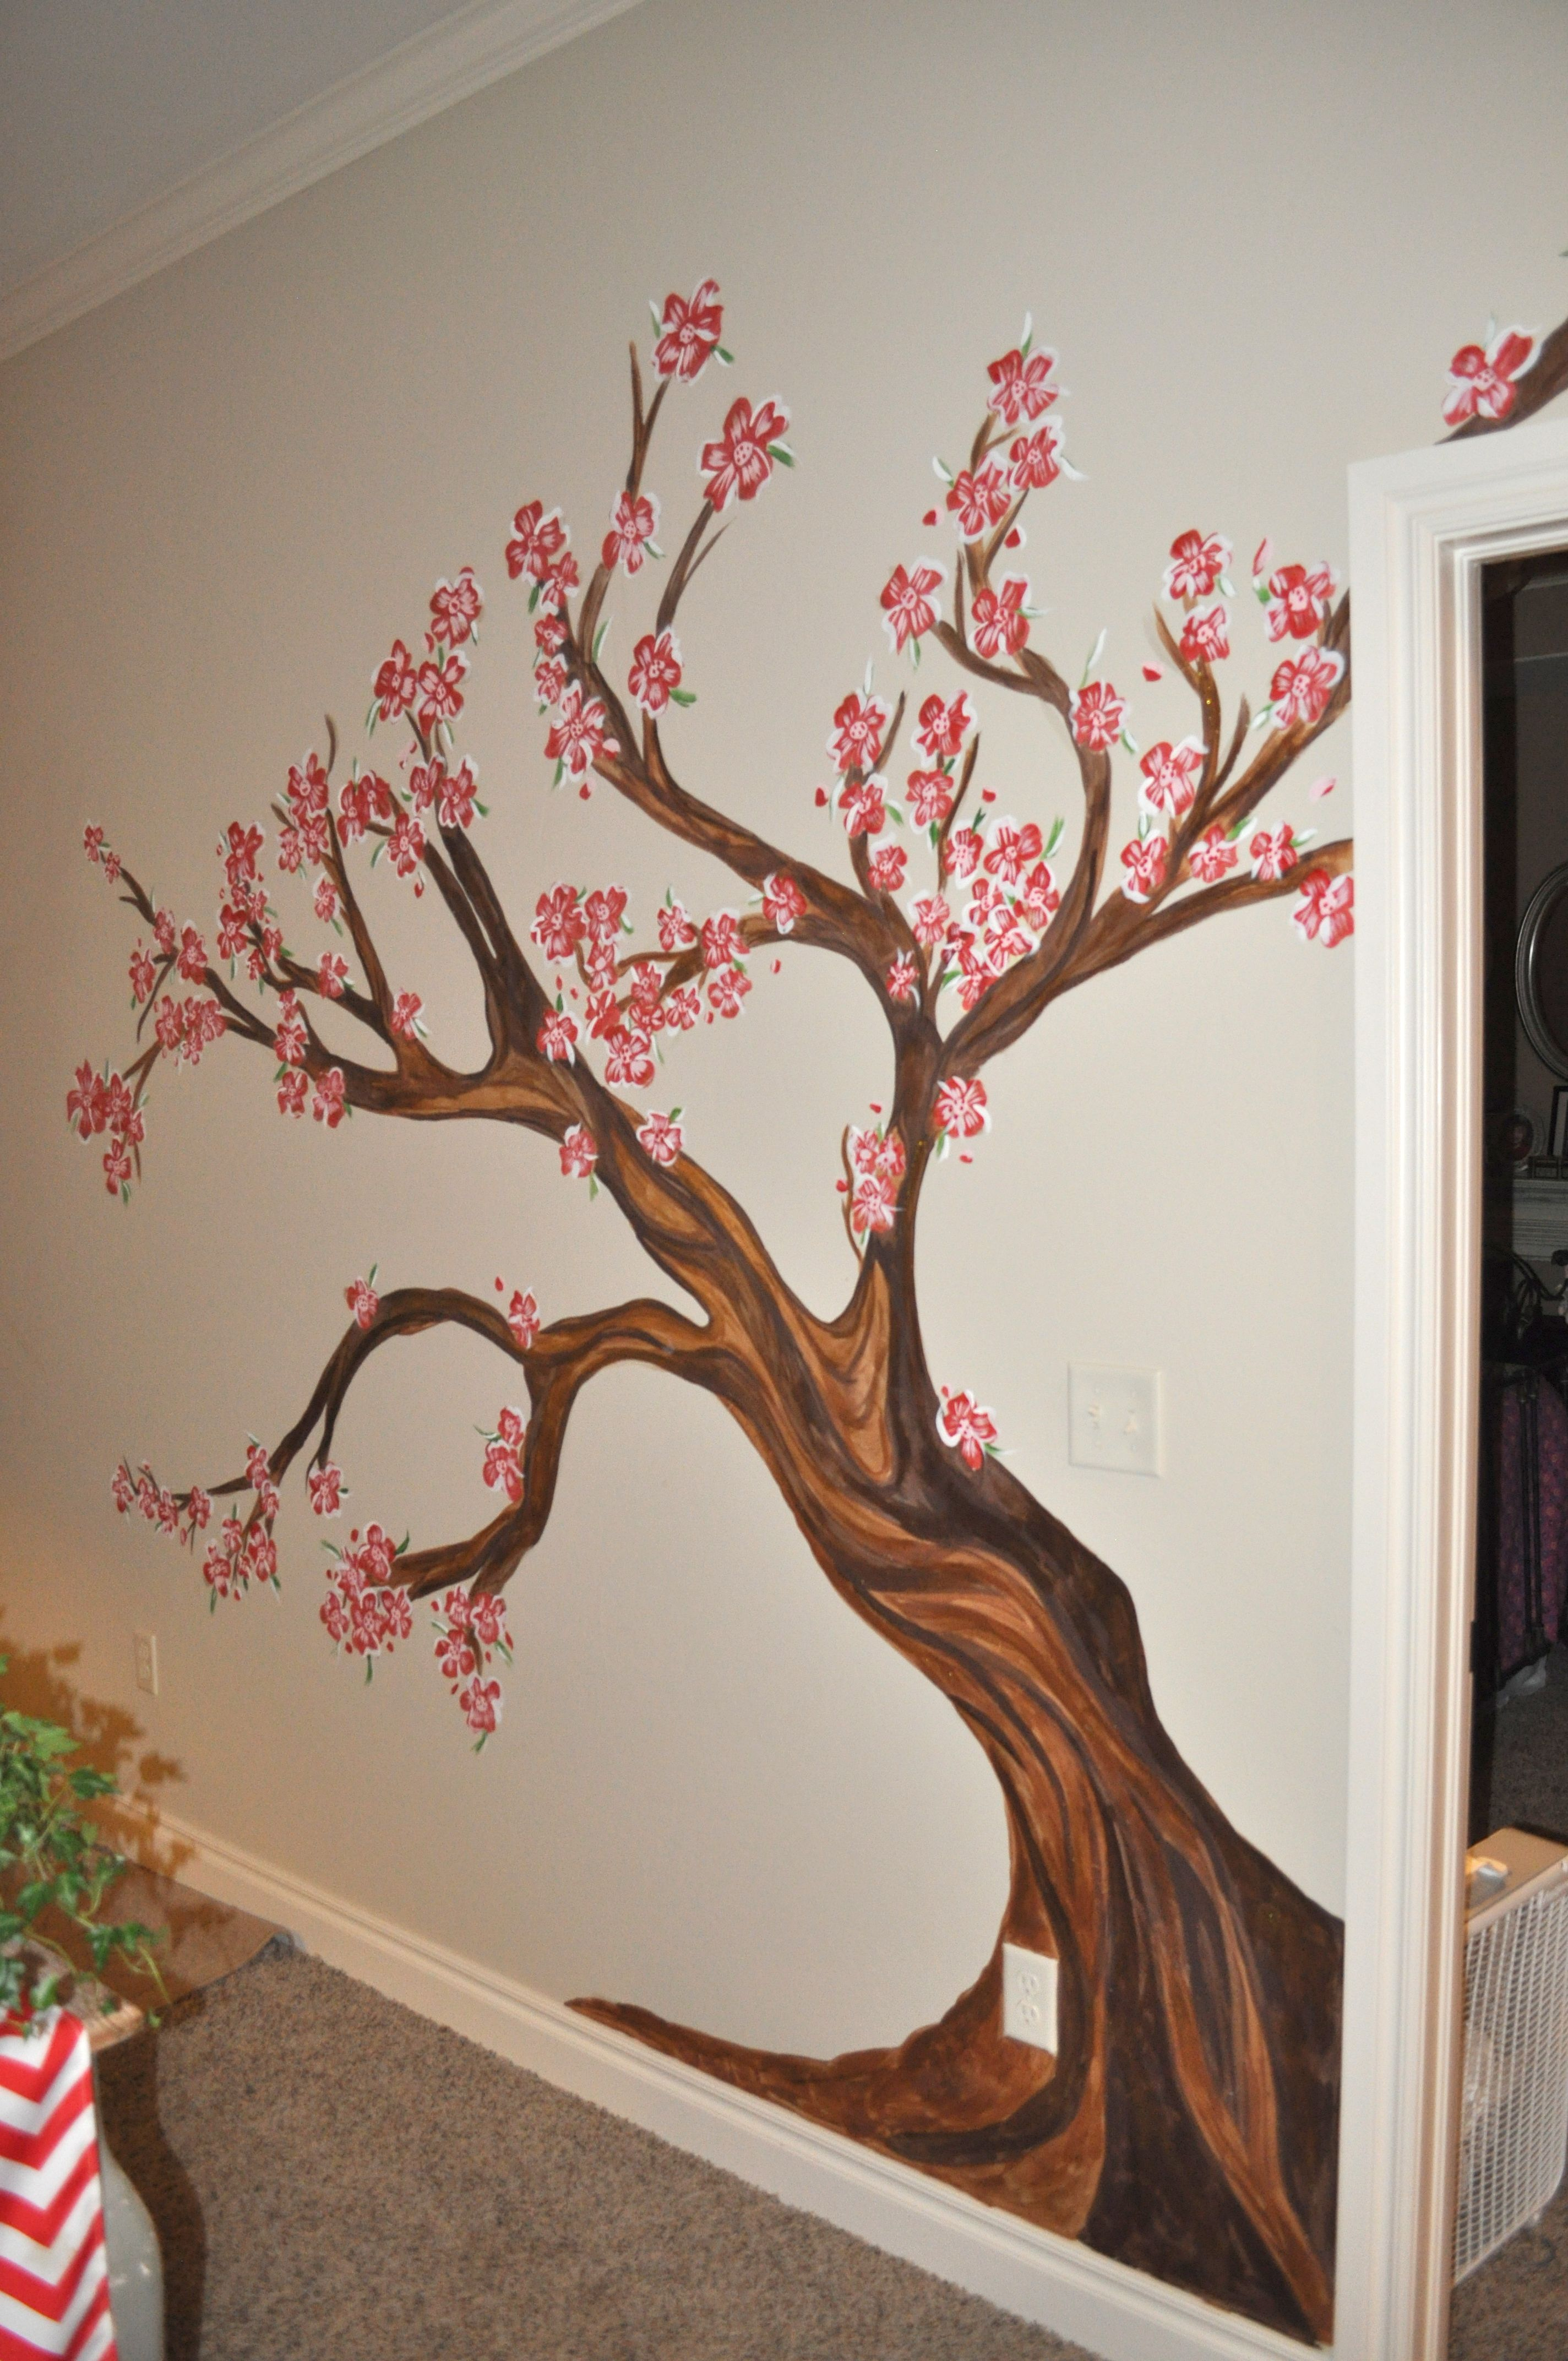 Cherry Blosson Tree In Living Room Mural By Sharon Mcbride Of All